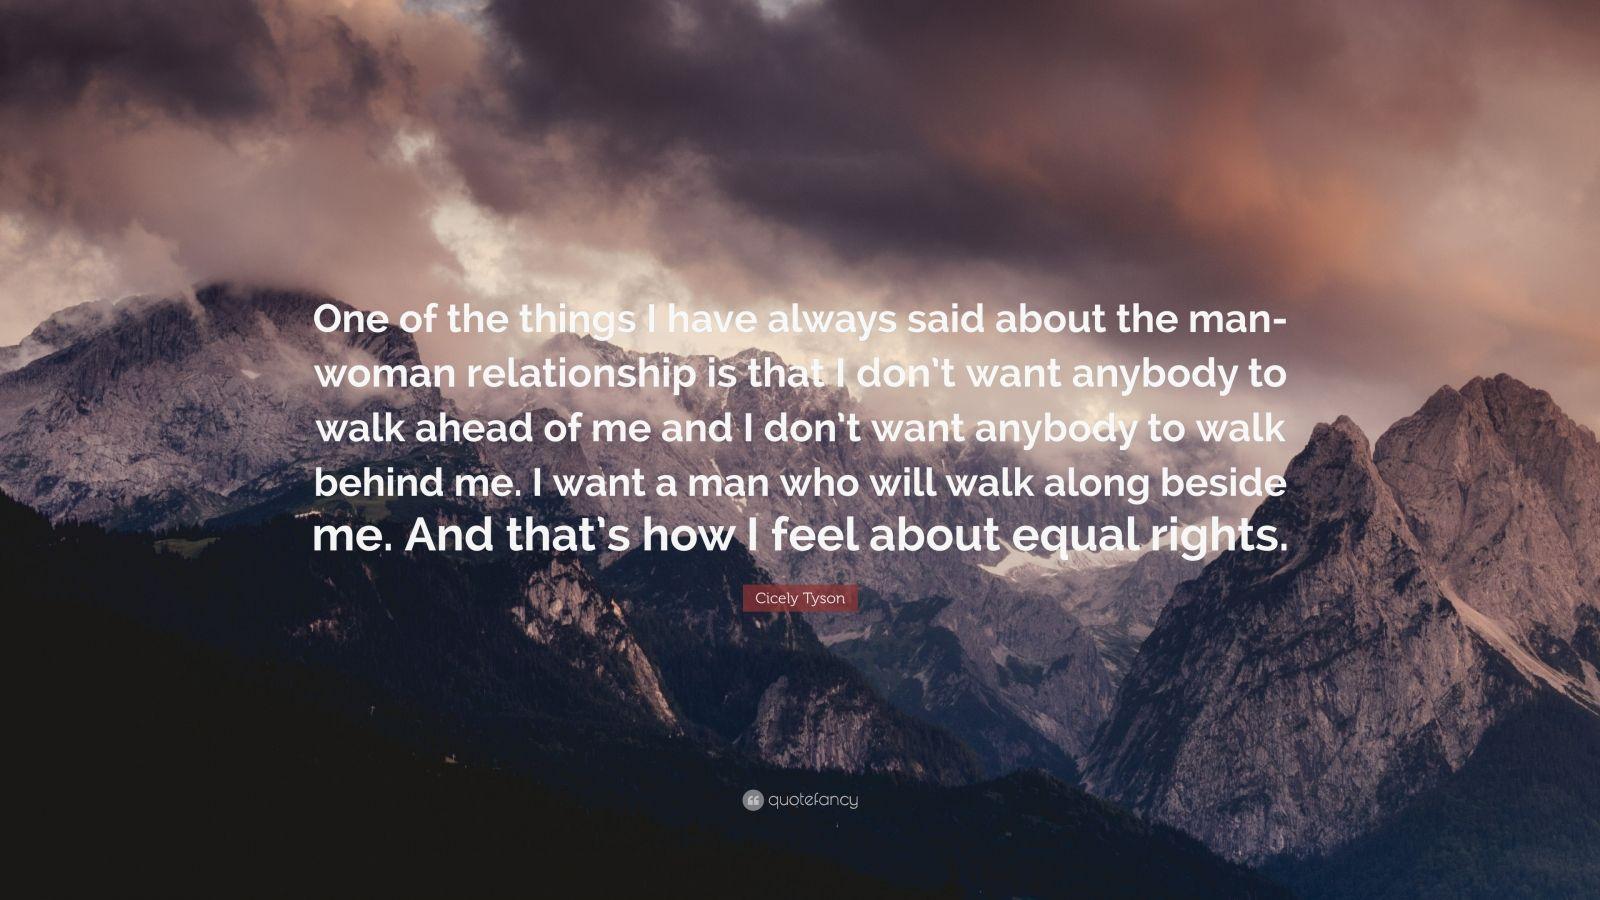 """Cicely Tyson Quote: """"One of the things I have always said about the man-woman relationship is that I don't want anybody to walk ahead of me and I don't want anybody to walk behind me. I want a man who will walk along beside me. And that's how I feel about equal rights."""""""